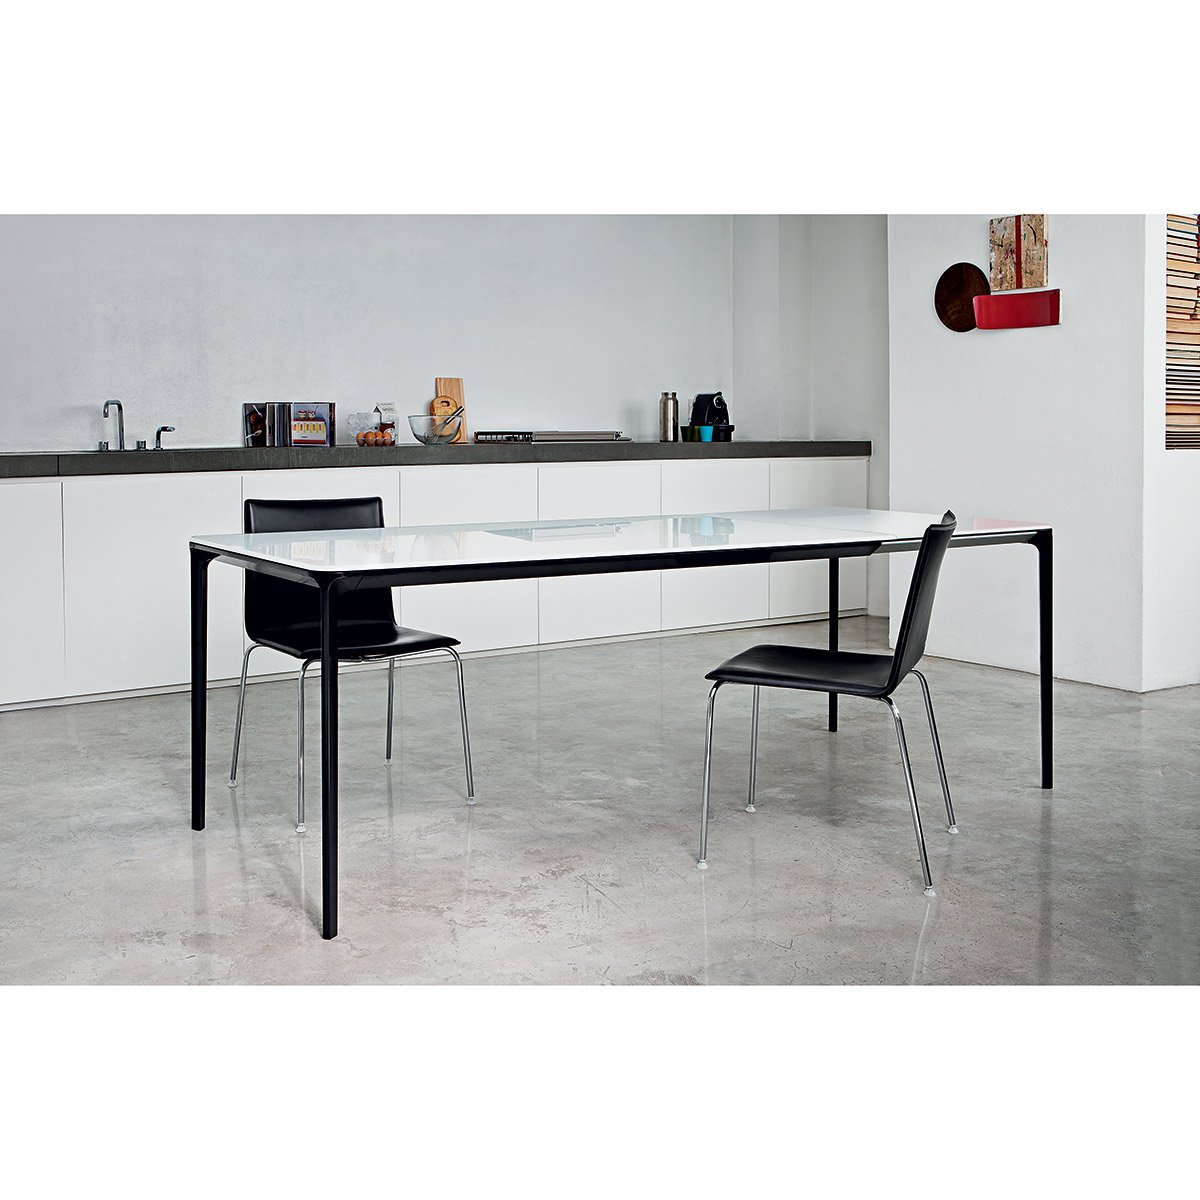 table extensible light pieds noirs meubles et atmosph re. Black Bedroom Furniture Sets. Home Design Ideas